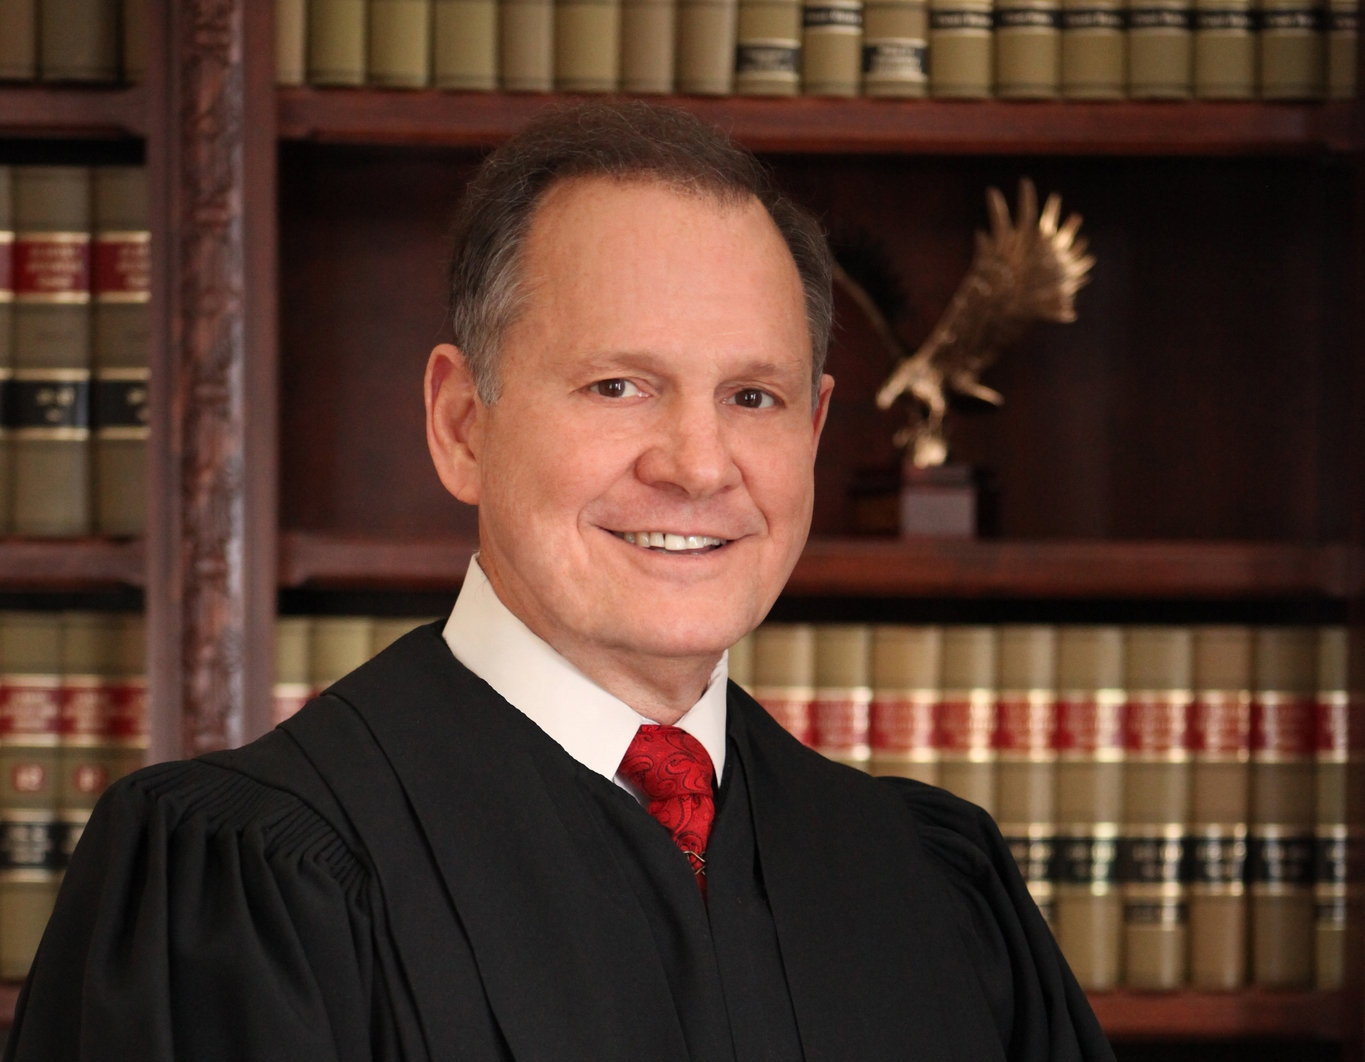 Court to consider future of Alabama chief justice